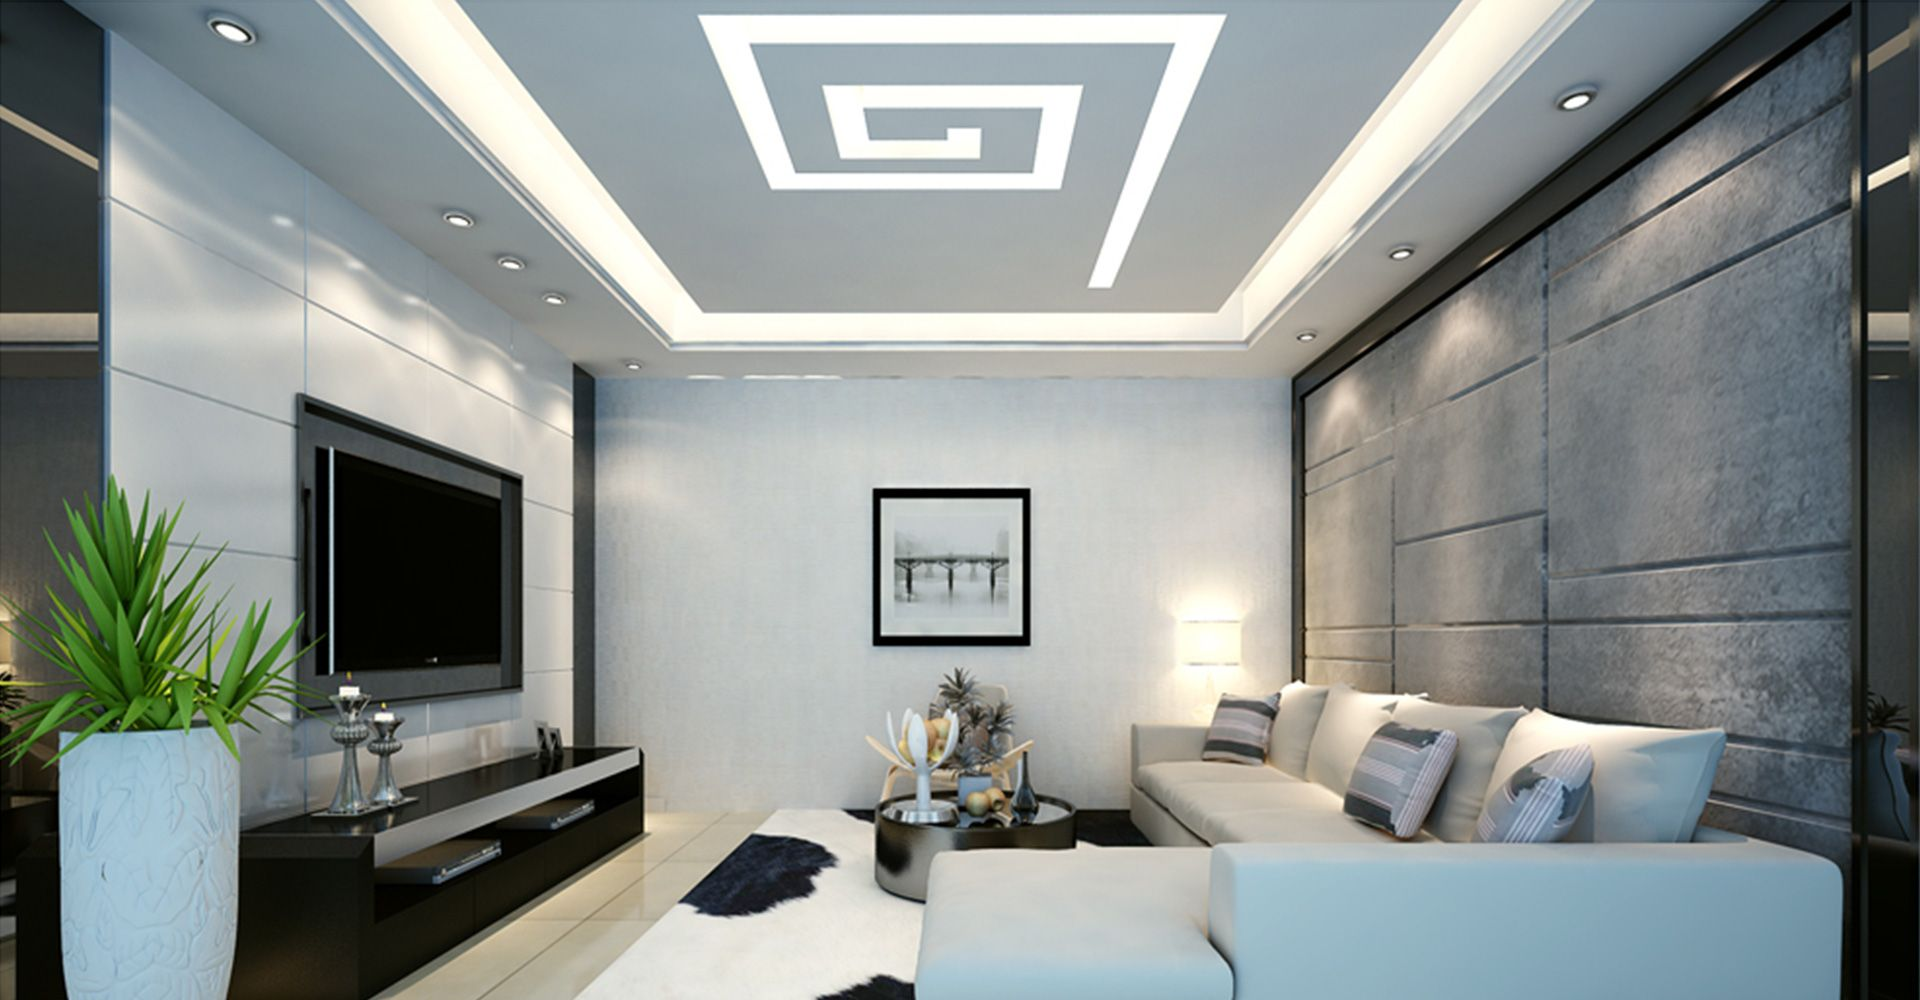 Living Room Ceiling Designs Endearing Amazing Living Room False Ceiling Designs For Your Beautiful Space Inspiration Design